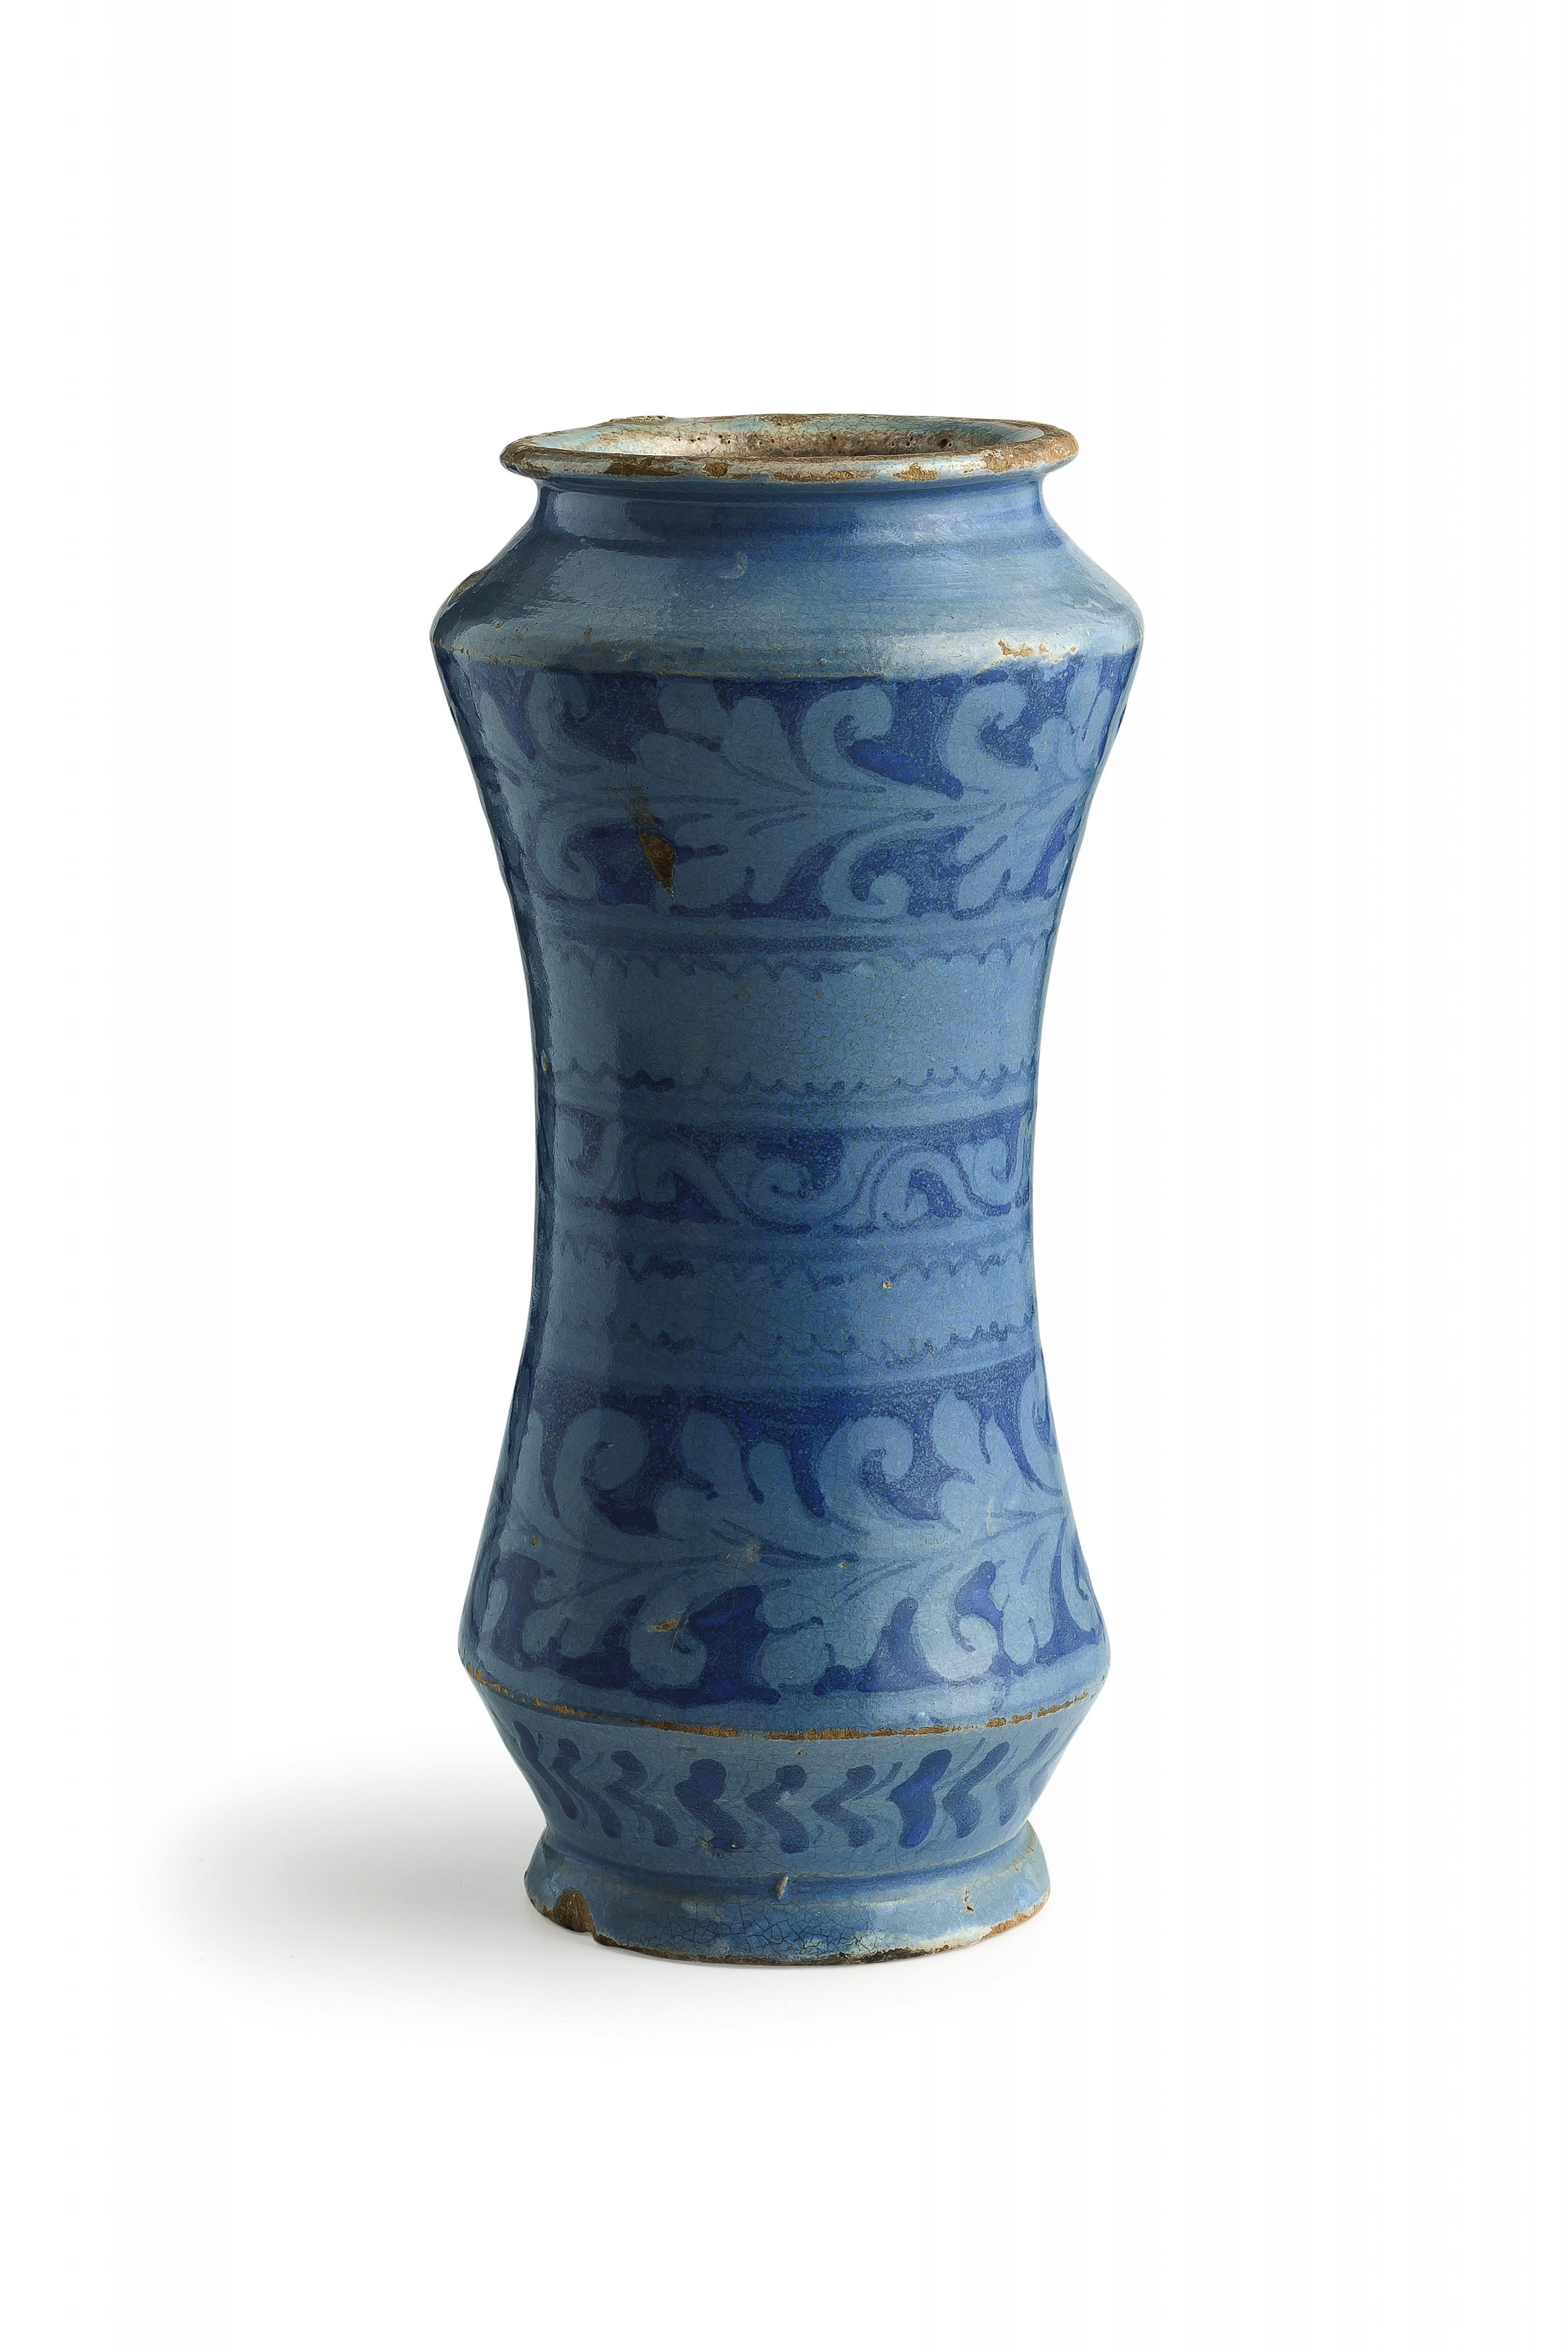 A pharmacist's vessel from Caltagirone sold for £1 600 Estimate: £260-500